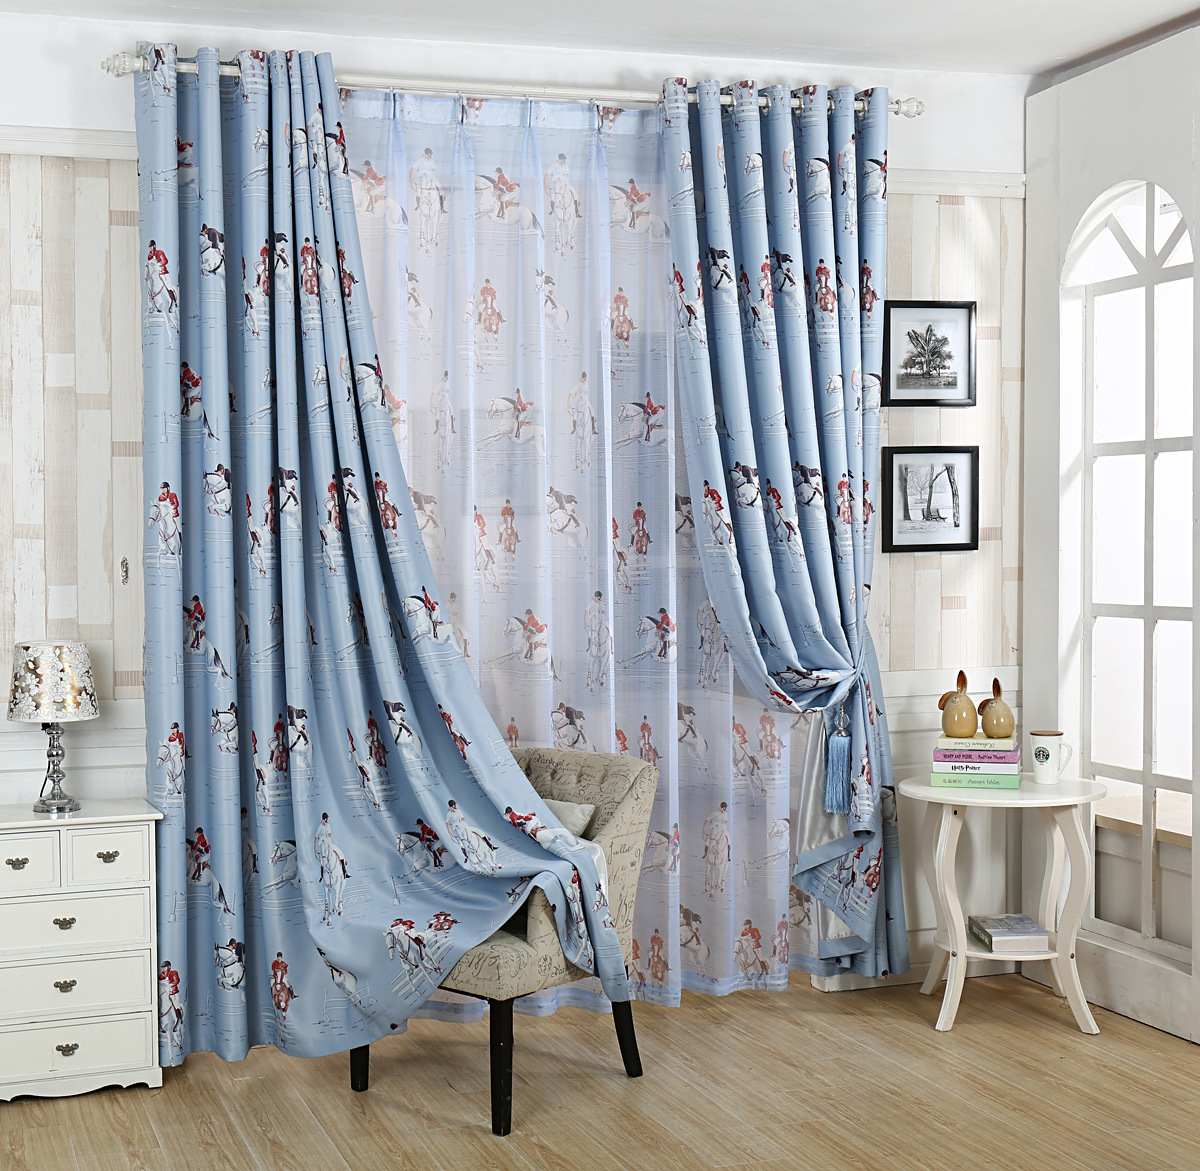 China Blue Curtains Us 12 99 The British Style Shade Cloth Curtain Cartoon Knight Curtains Horse Curtains Blue Curtains For Childrens Bedroom Living Room In Curtains